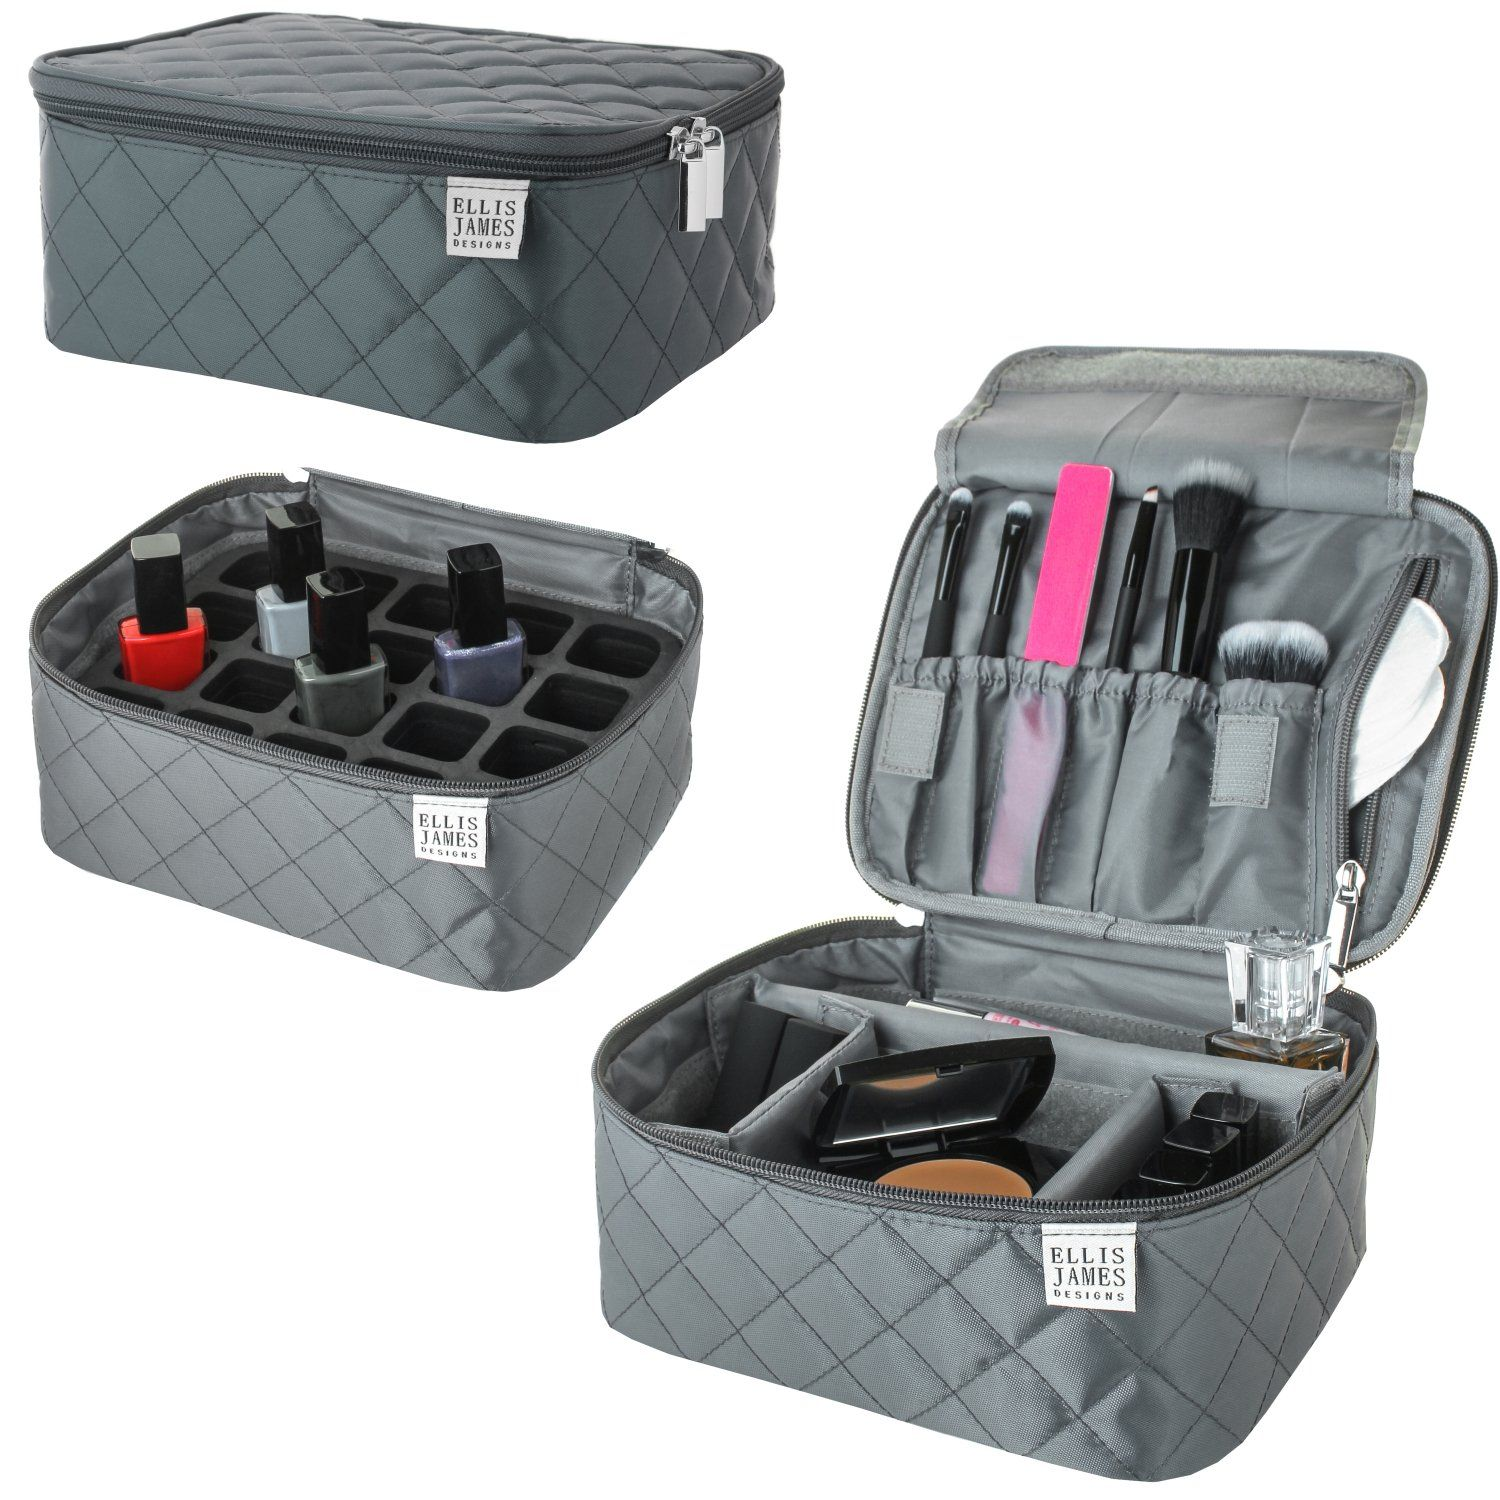 de1f4e3cf6640 Travel Makeup Train Case Bag